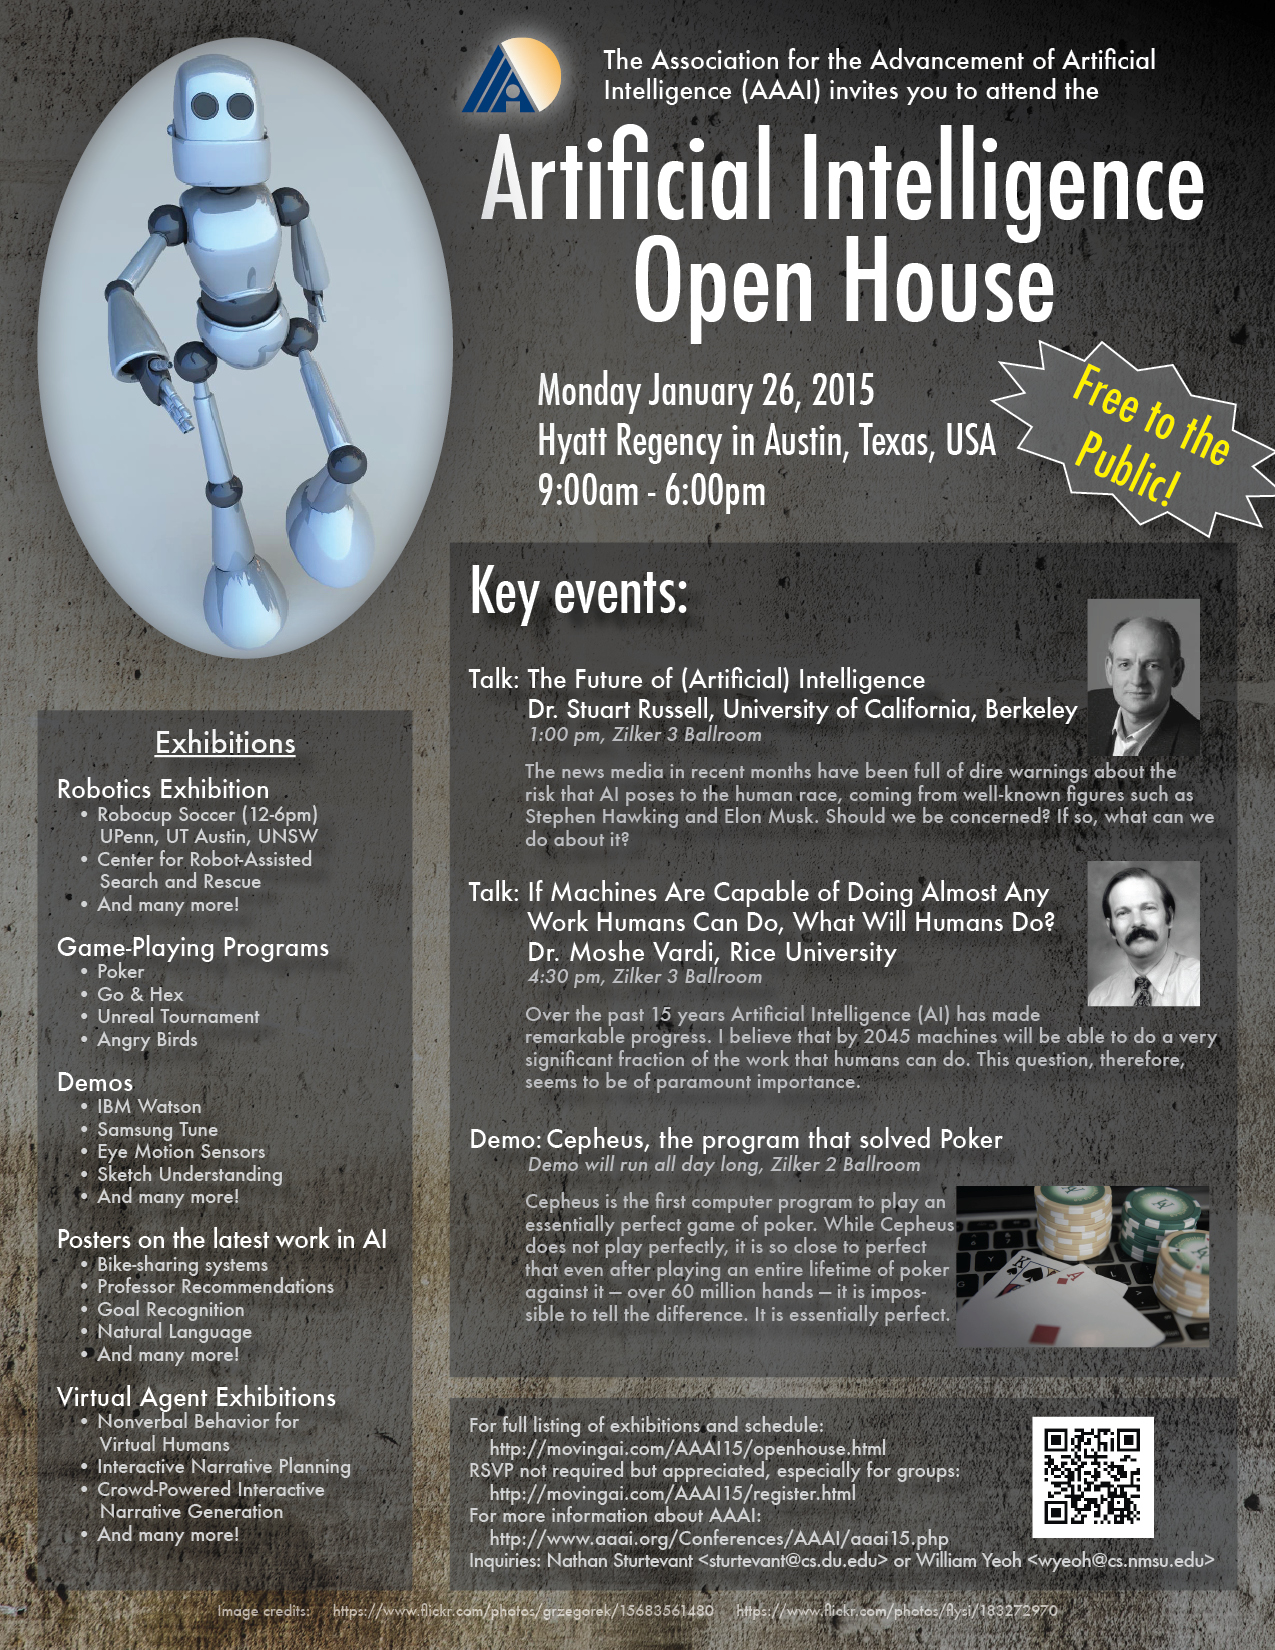 aaai 2015 open house page